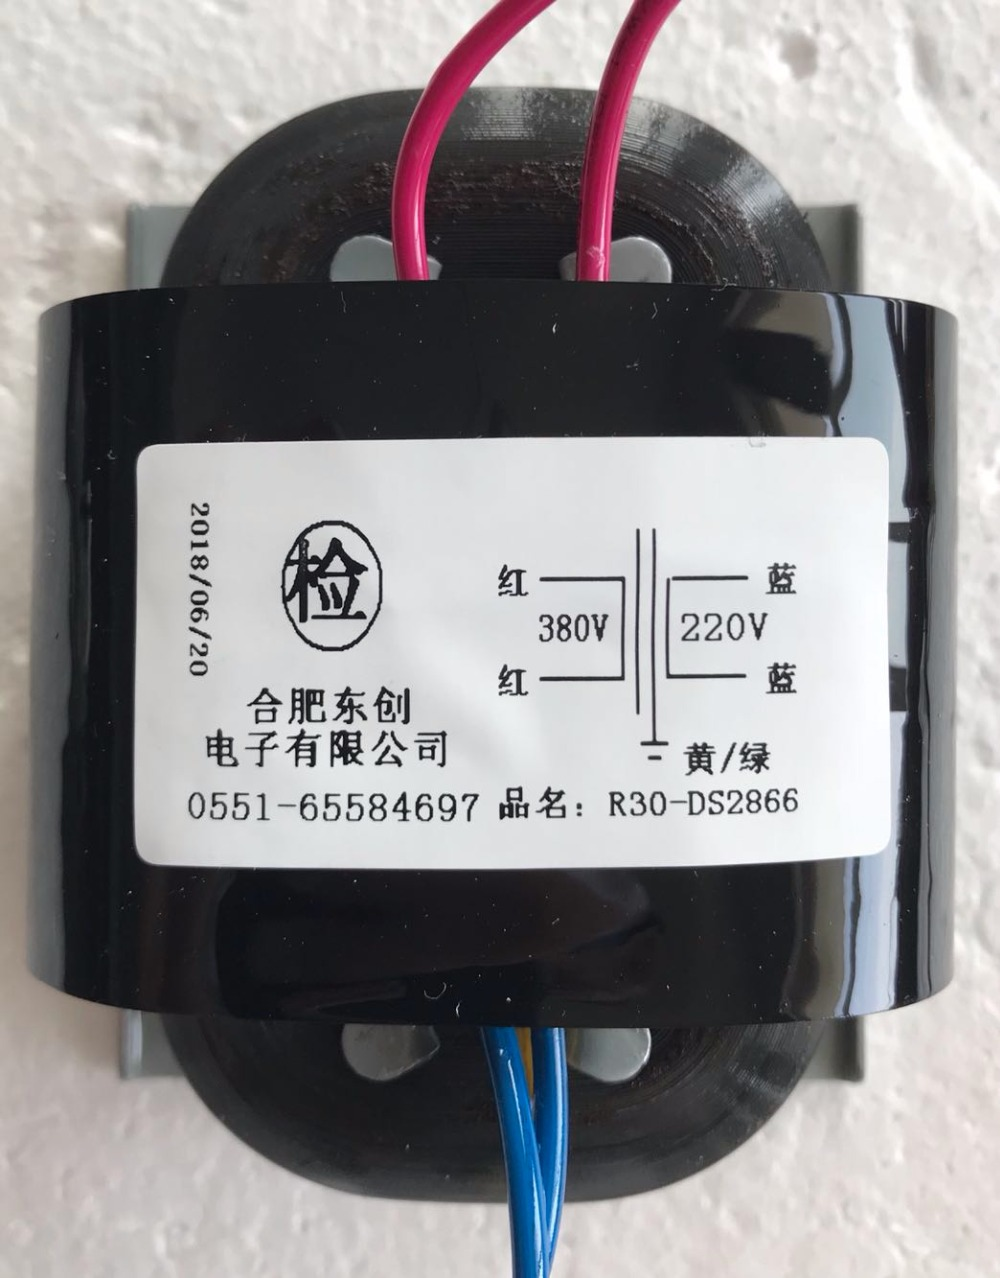 220V 0.18A R Core Transformer 40VA R30 custom transformer 380V copper shield Refrigeration equipment transformer220V 0.18A R Core Transformer 40VA R30 custom transformer 380V copper shield Refrigeration equipment transformer